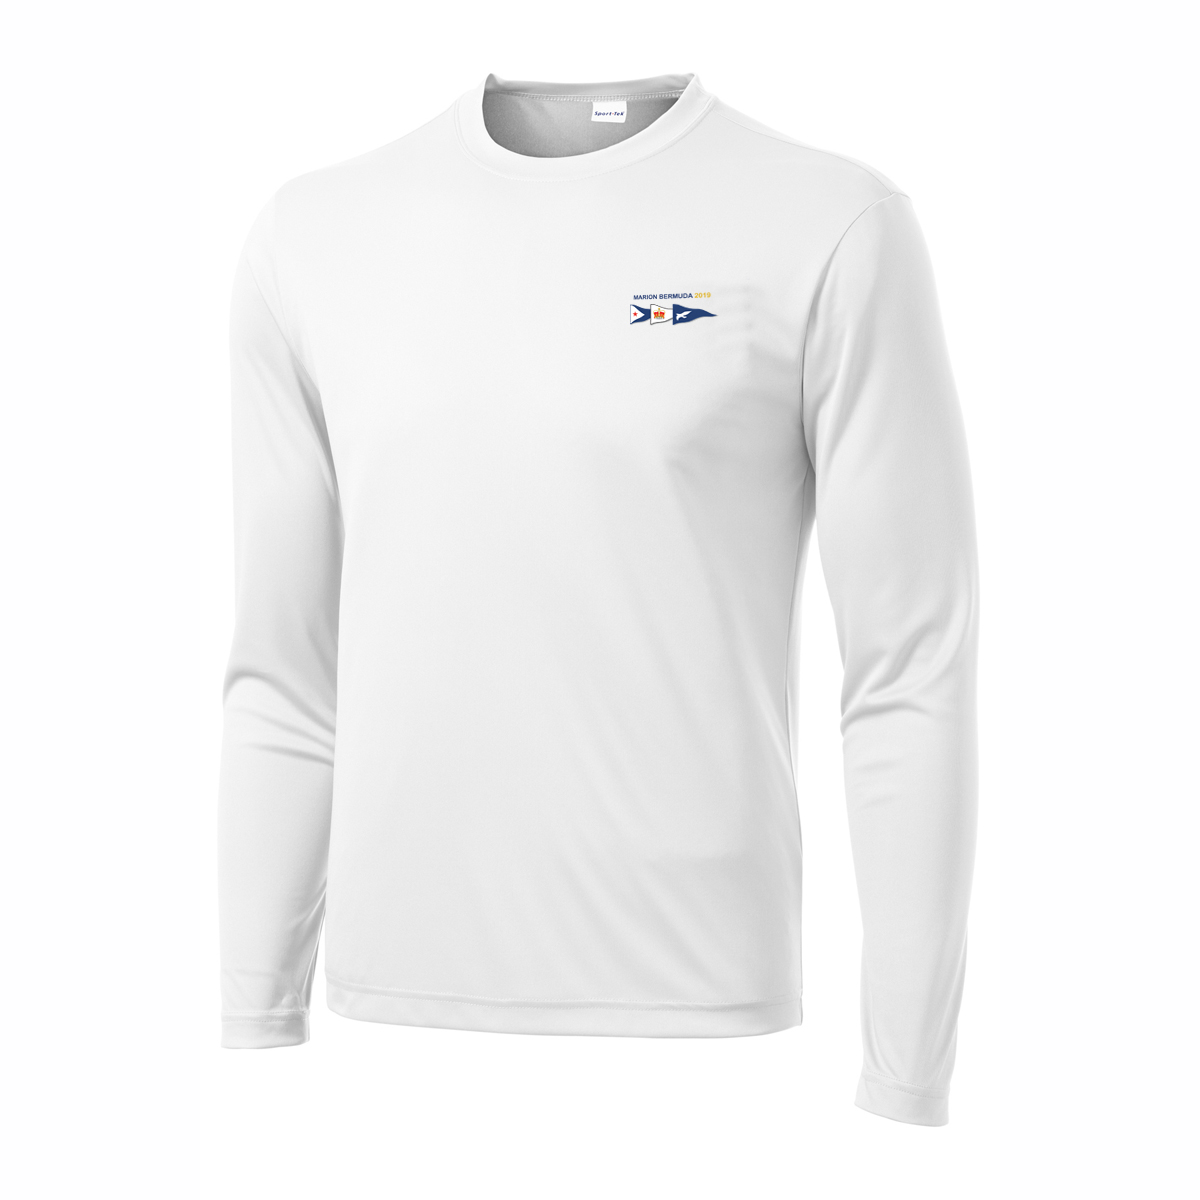 MBR 19 M'S L/S TECH TEE 2019 - WAS $35